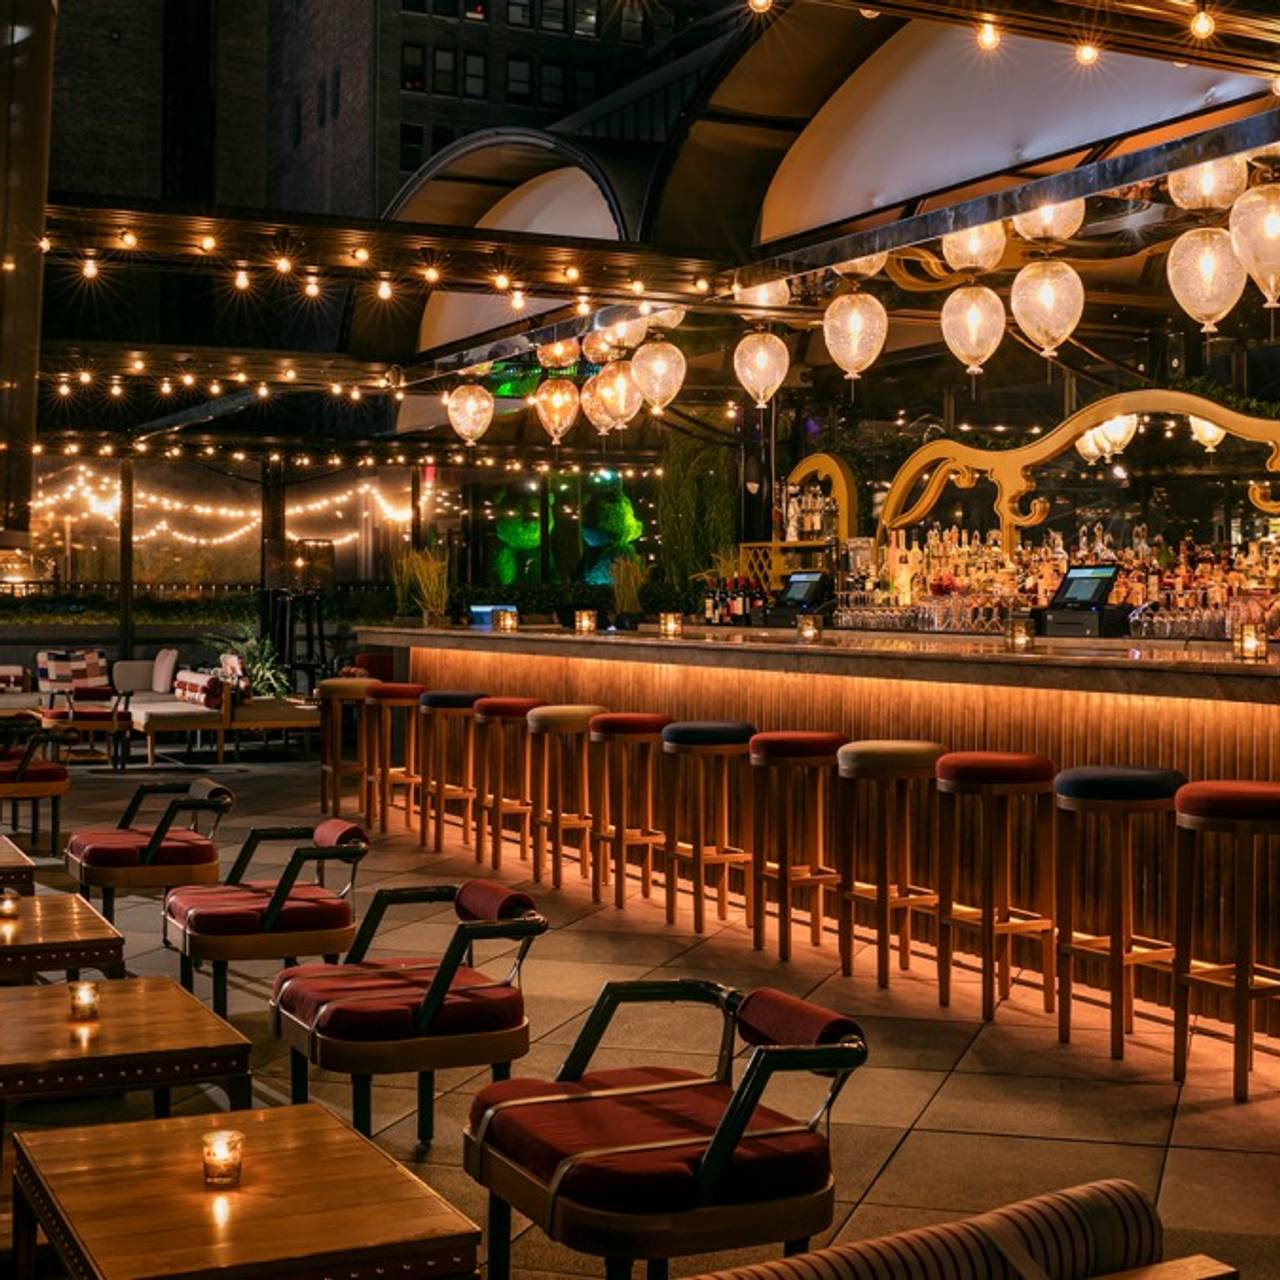 Magic Hour Rooftop Bar & Lounge Restaurant - New York, NY | OpenTable